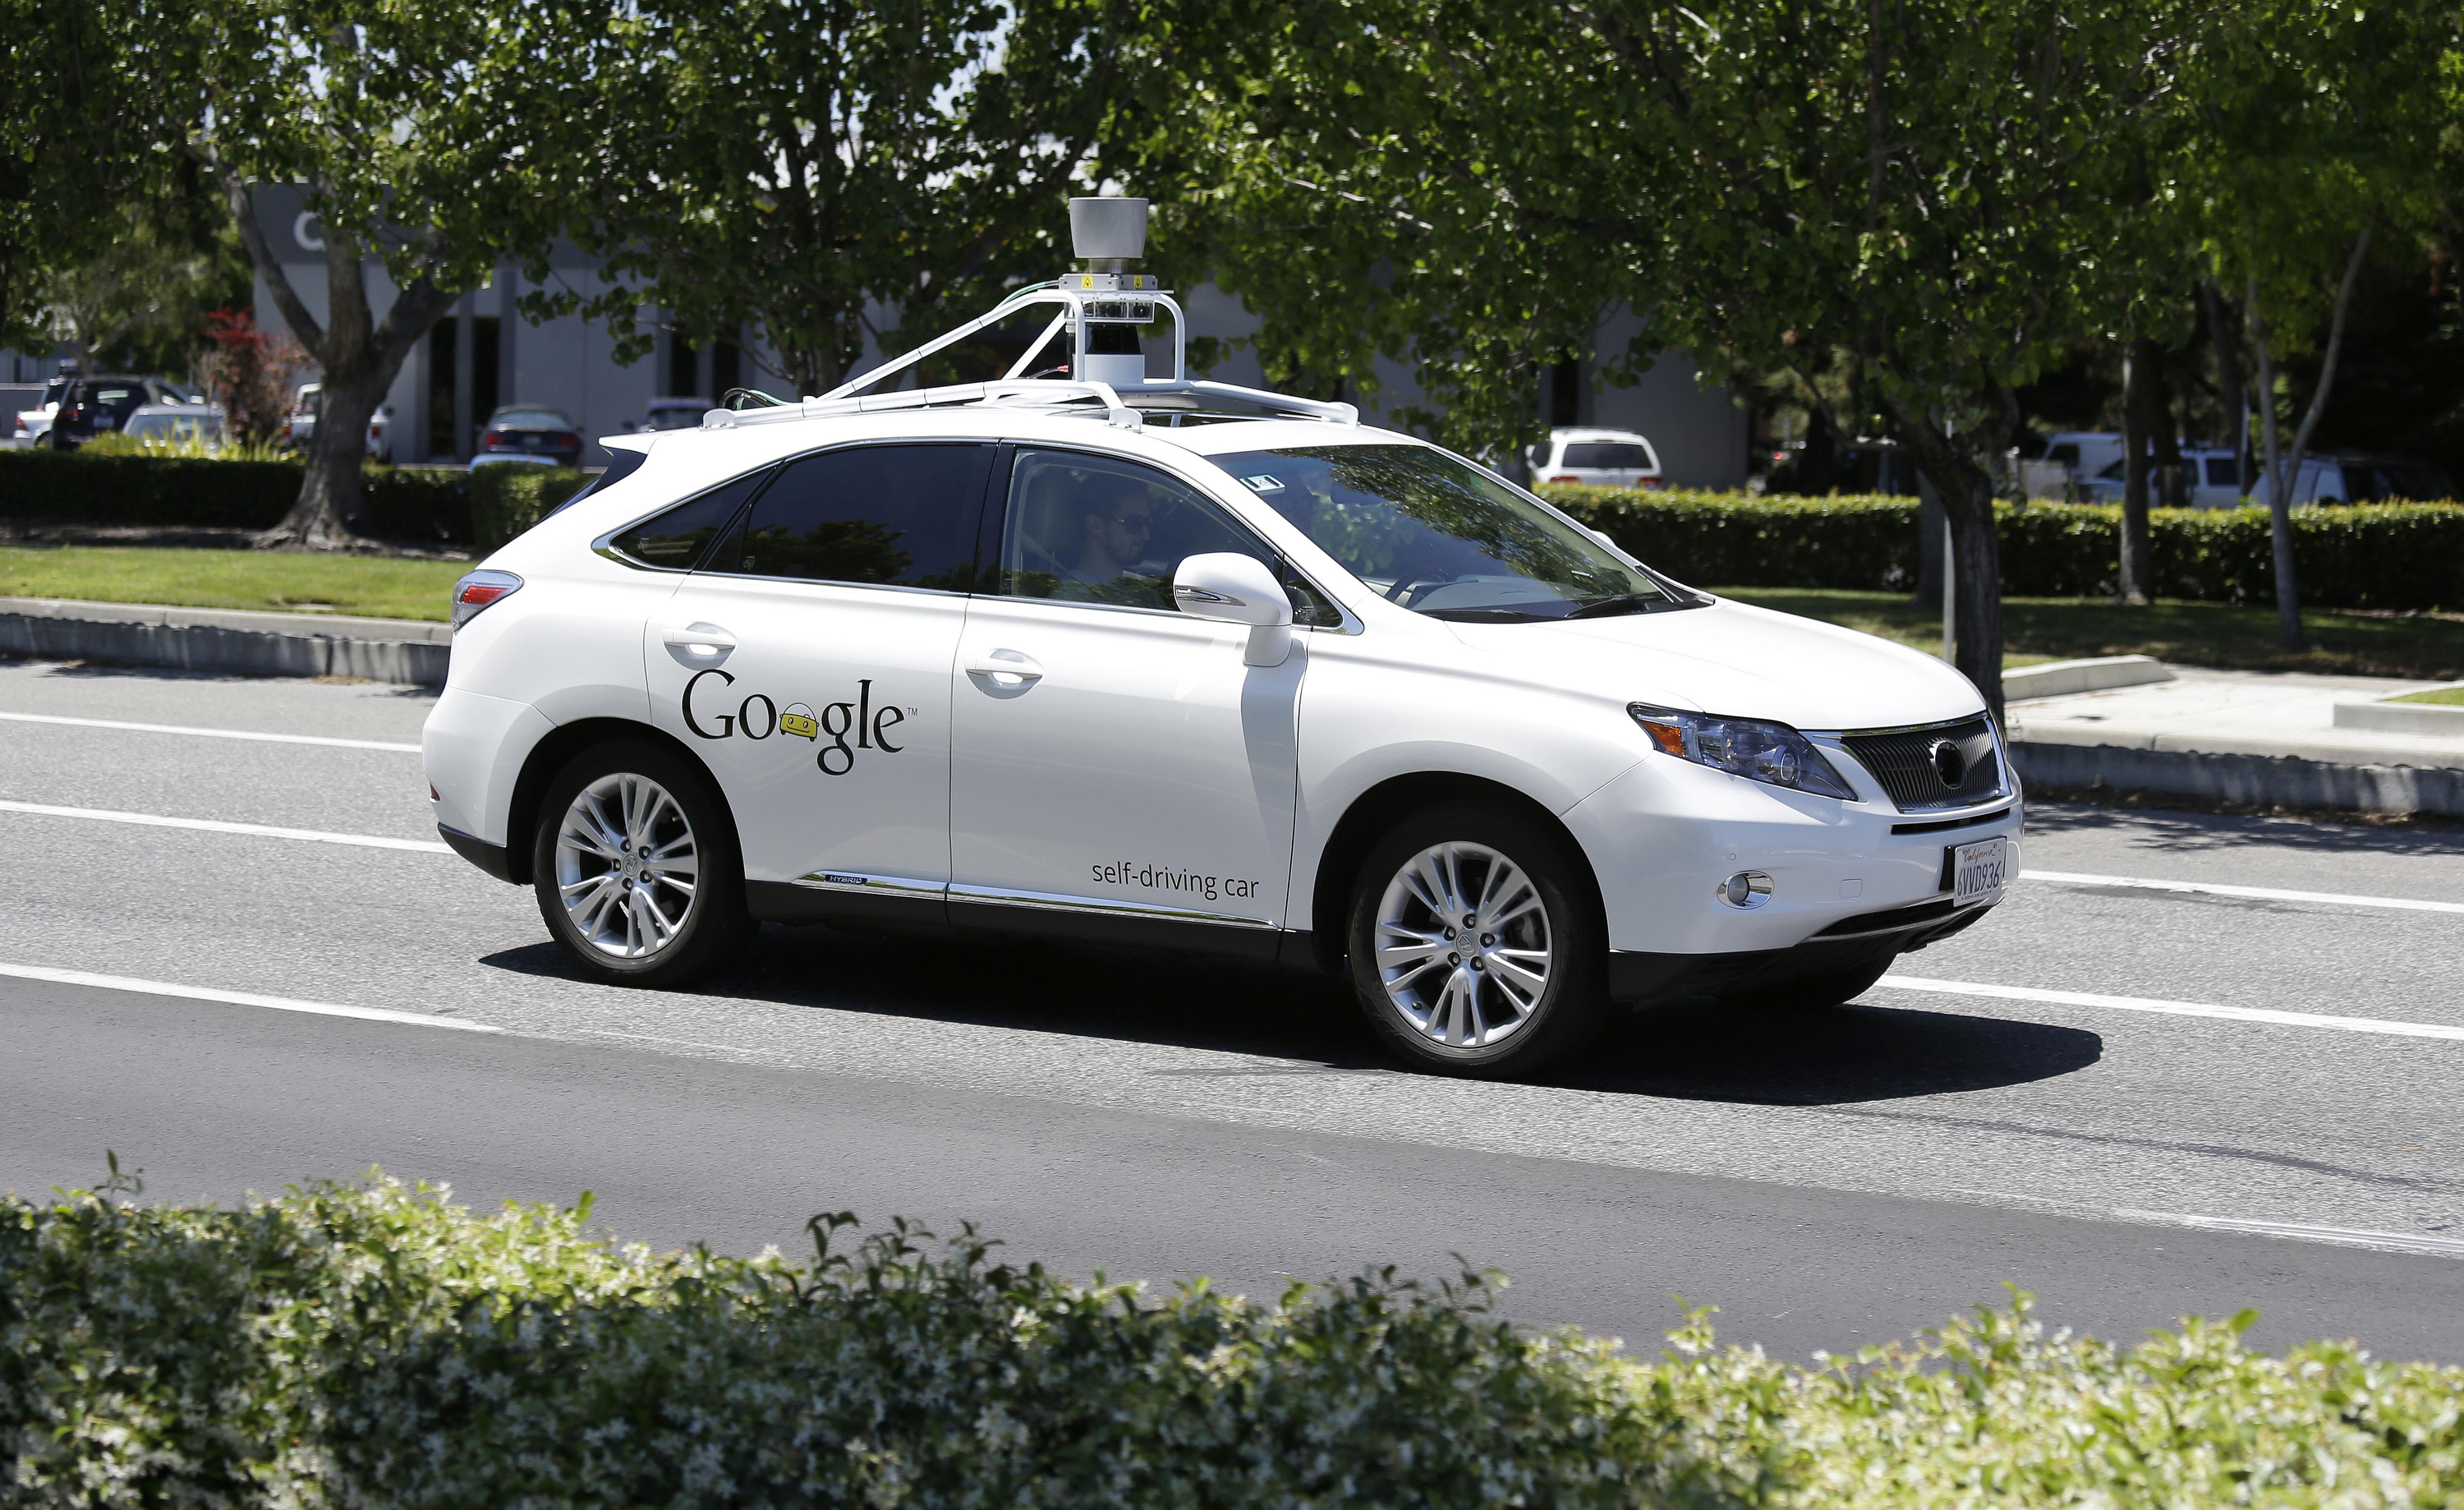 Driverless cars are closer to reality than you may think